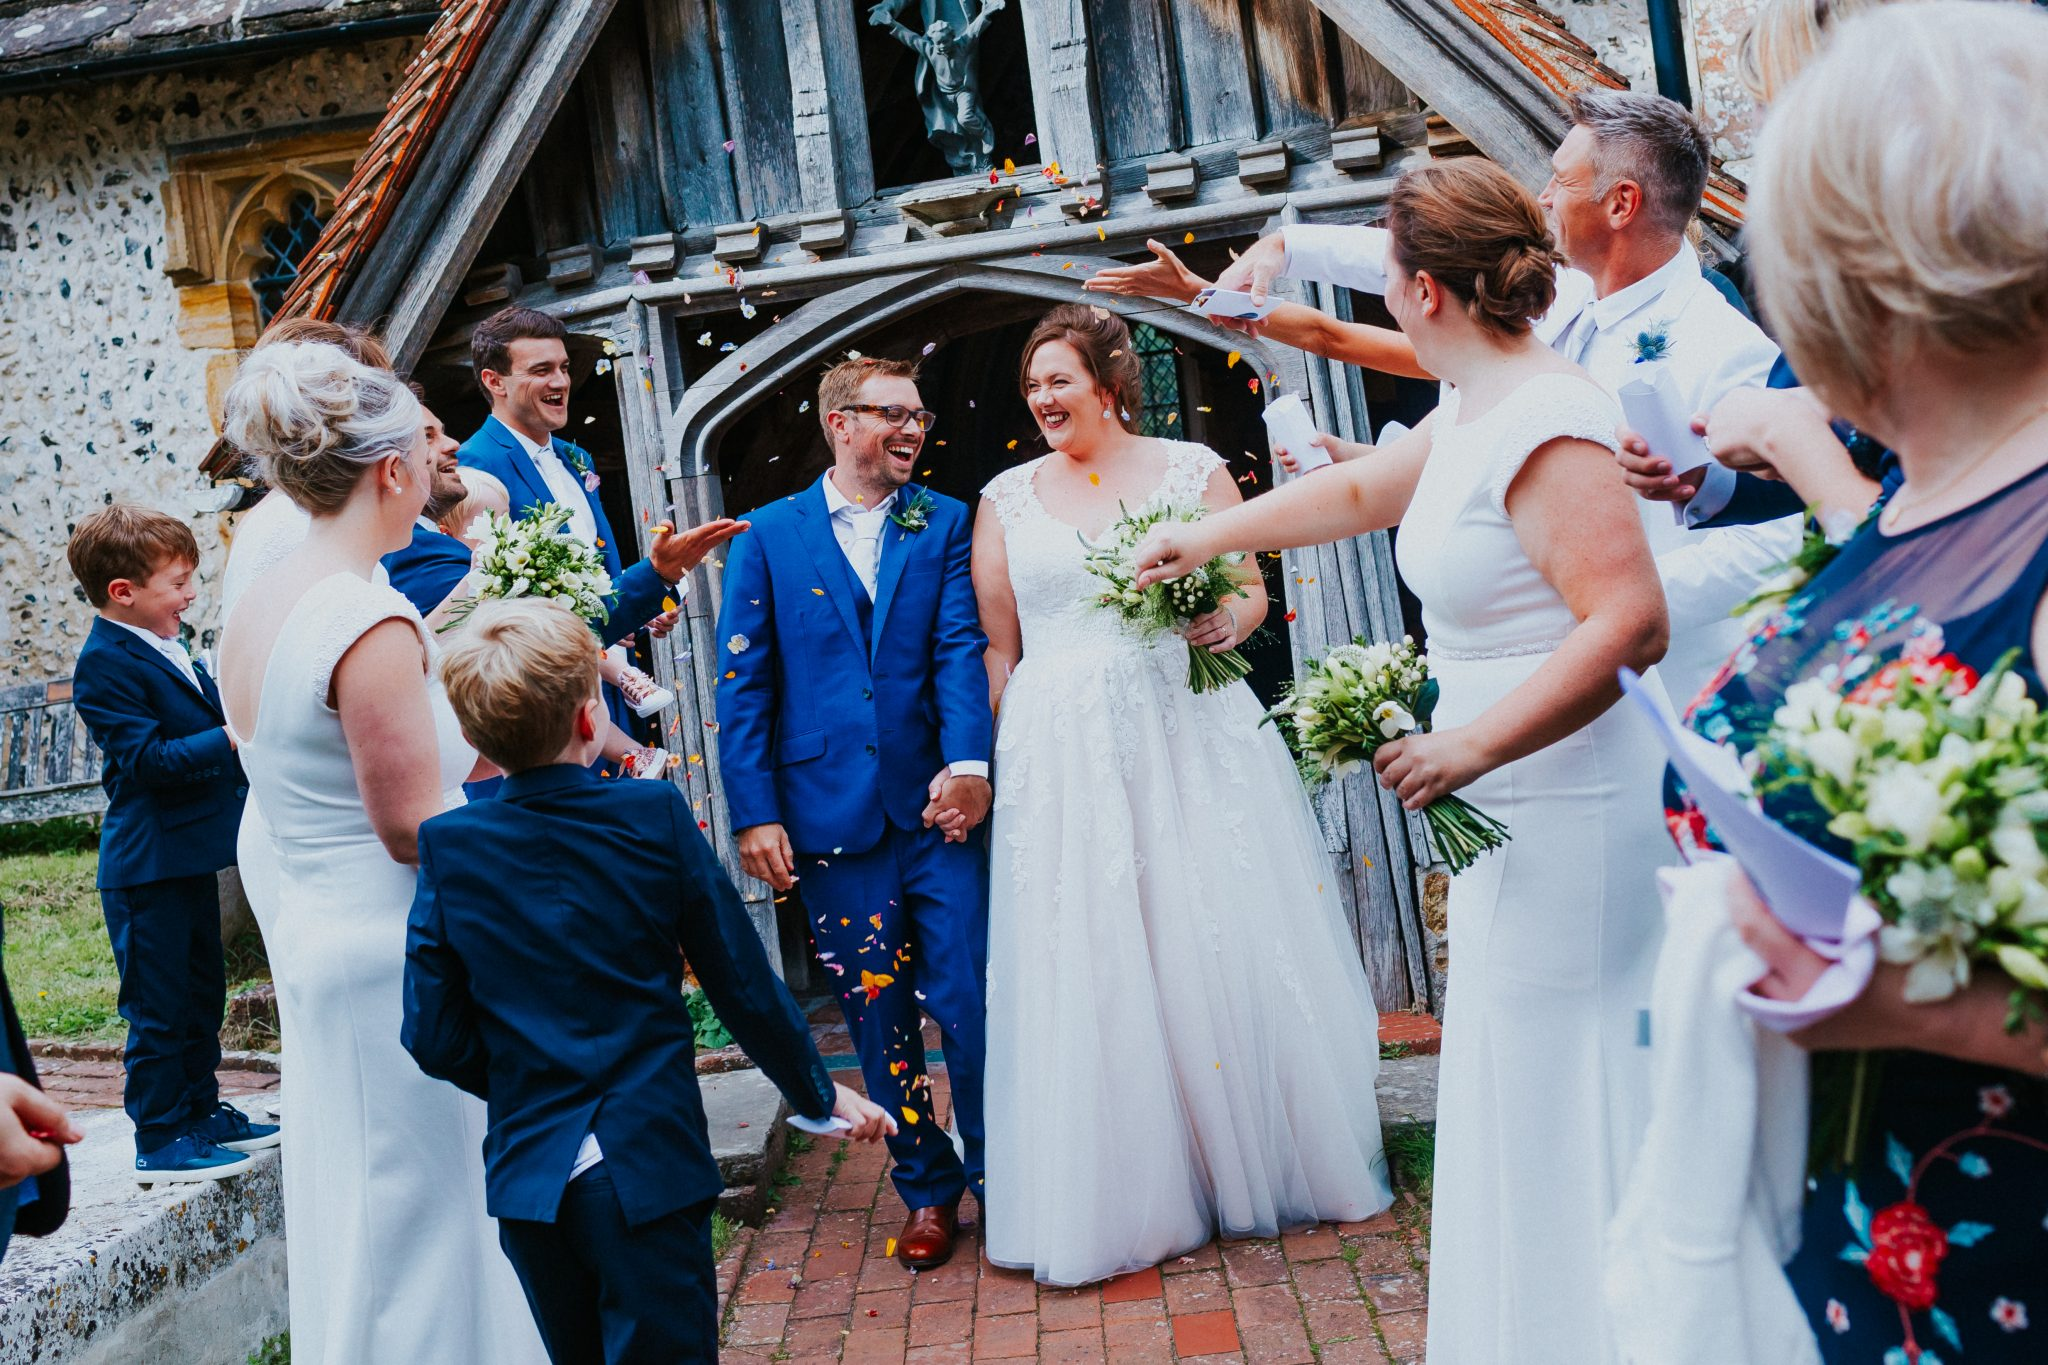 S Butler Photography - Sussex Wedding Photographer - Jim & Hannah - Ringmer 001